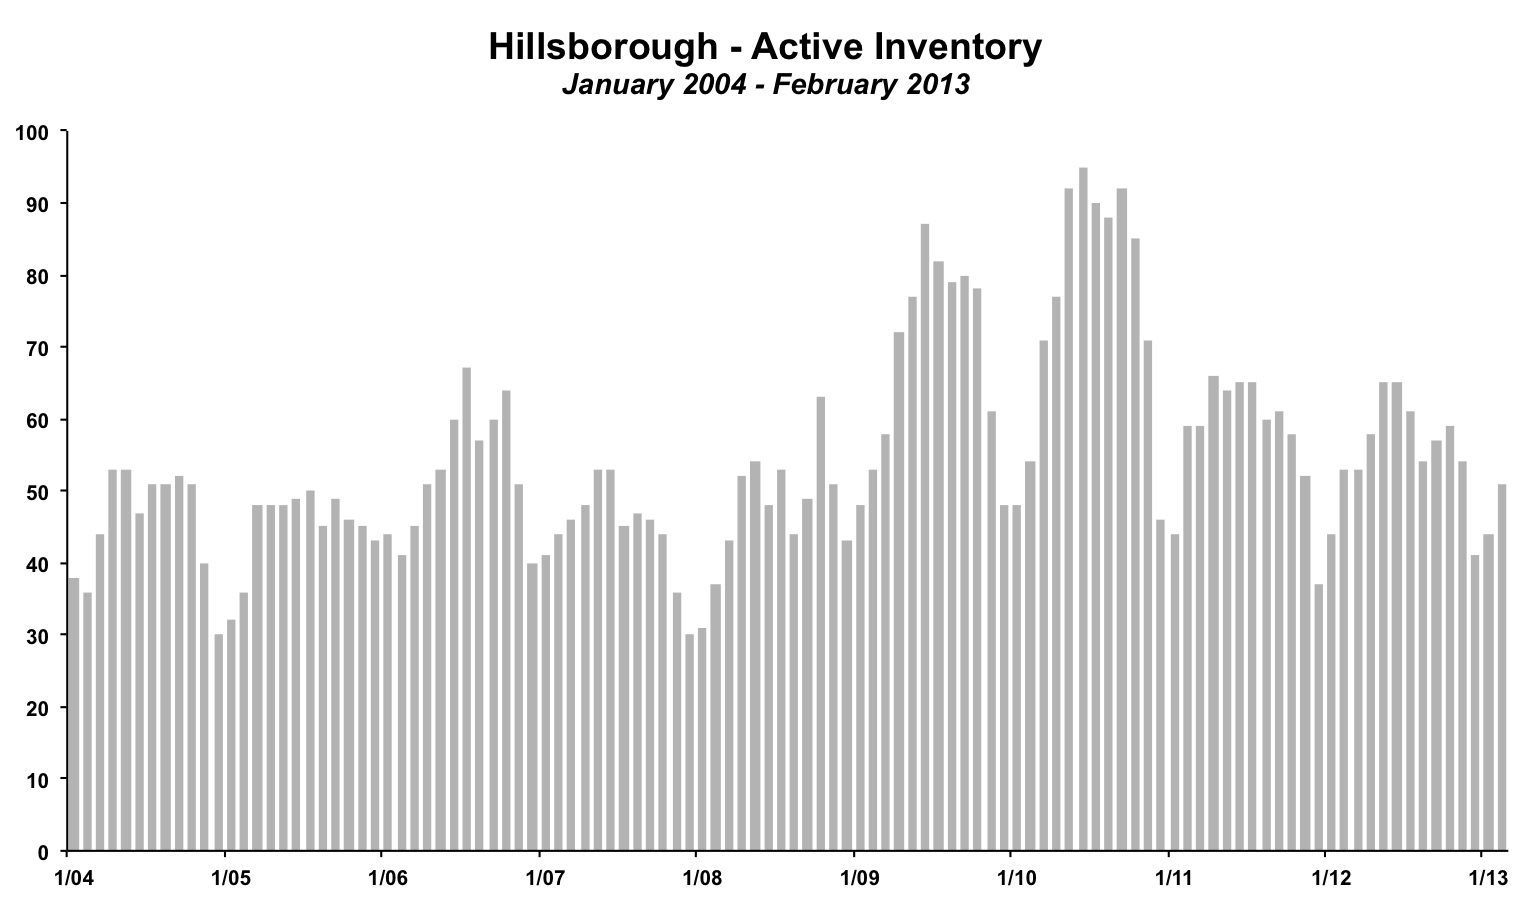 Hillsborough Inventory February 2013